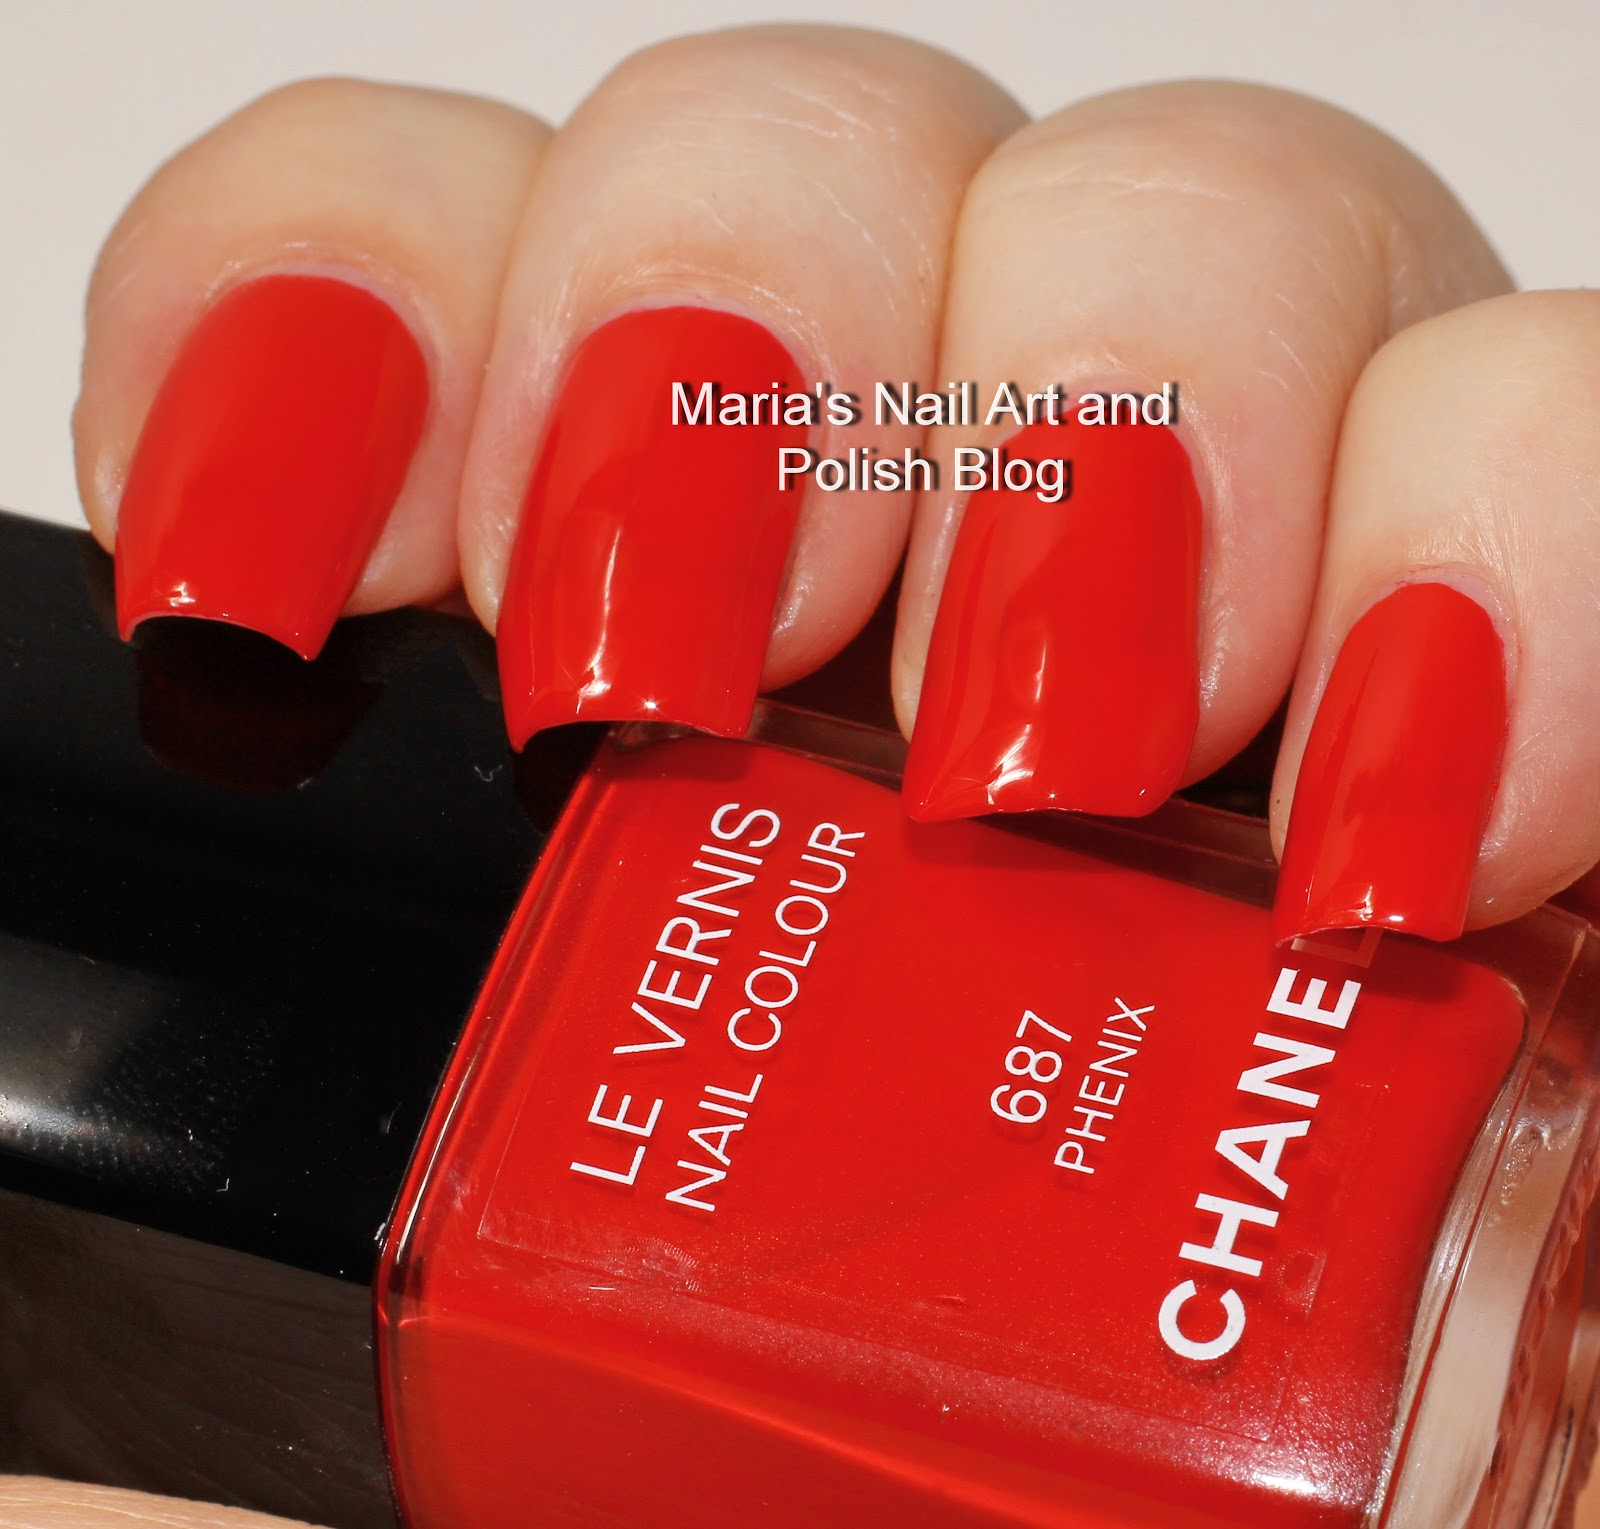 Marias Nail Art And Polish Blog Flushed With Stripes And: Marias Nail Art And Polish Blog: Chanel Phenix 687